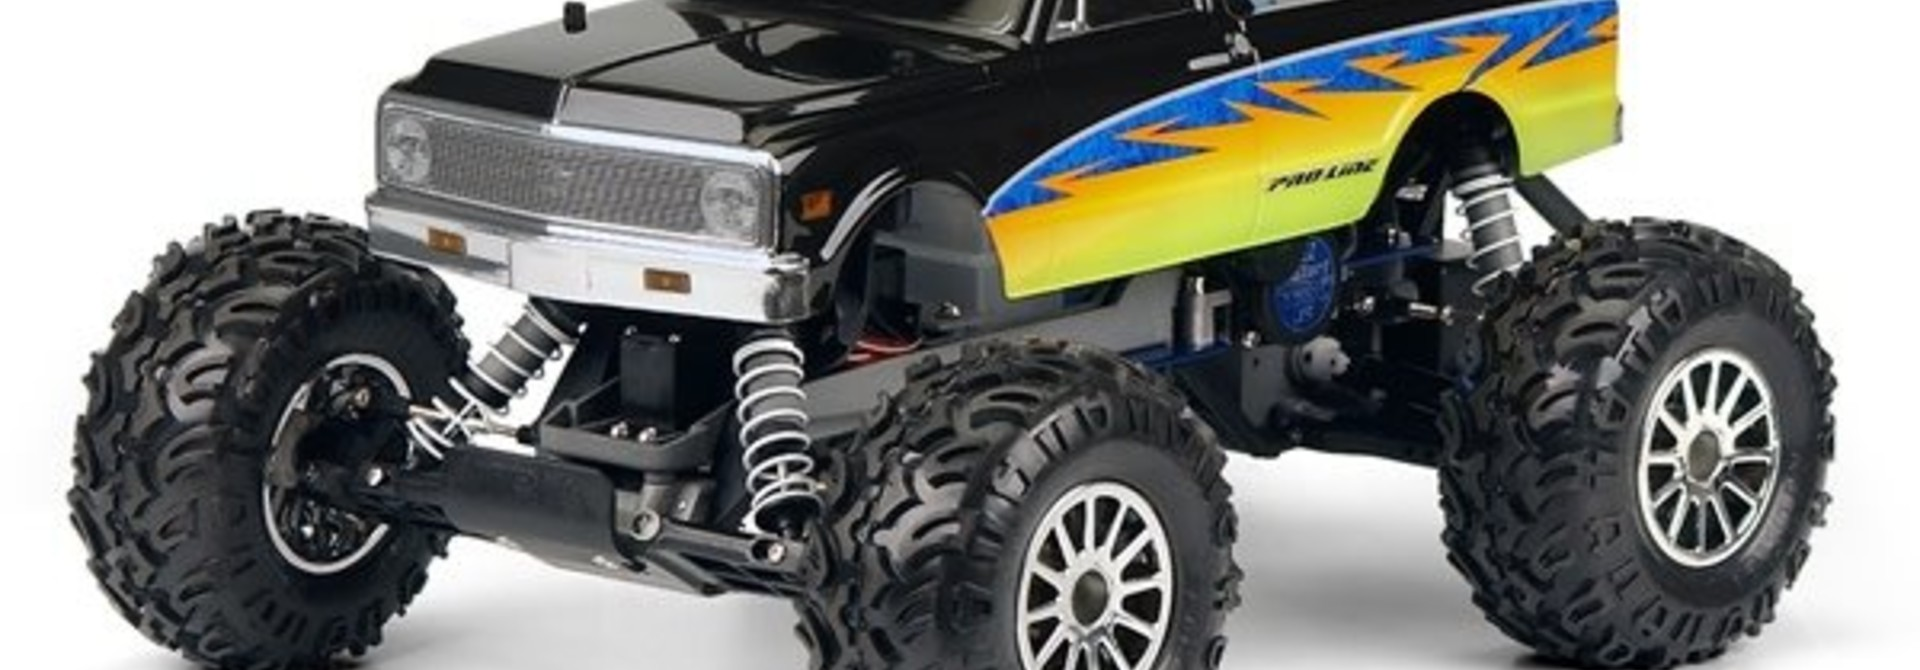 1972 Chevy C-10 Clear Body for Stampede